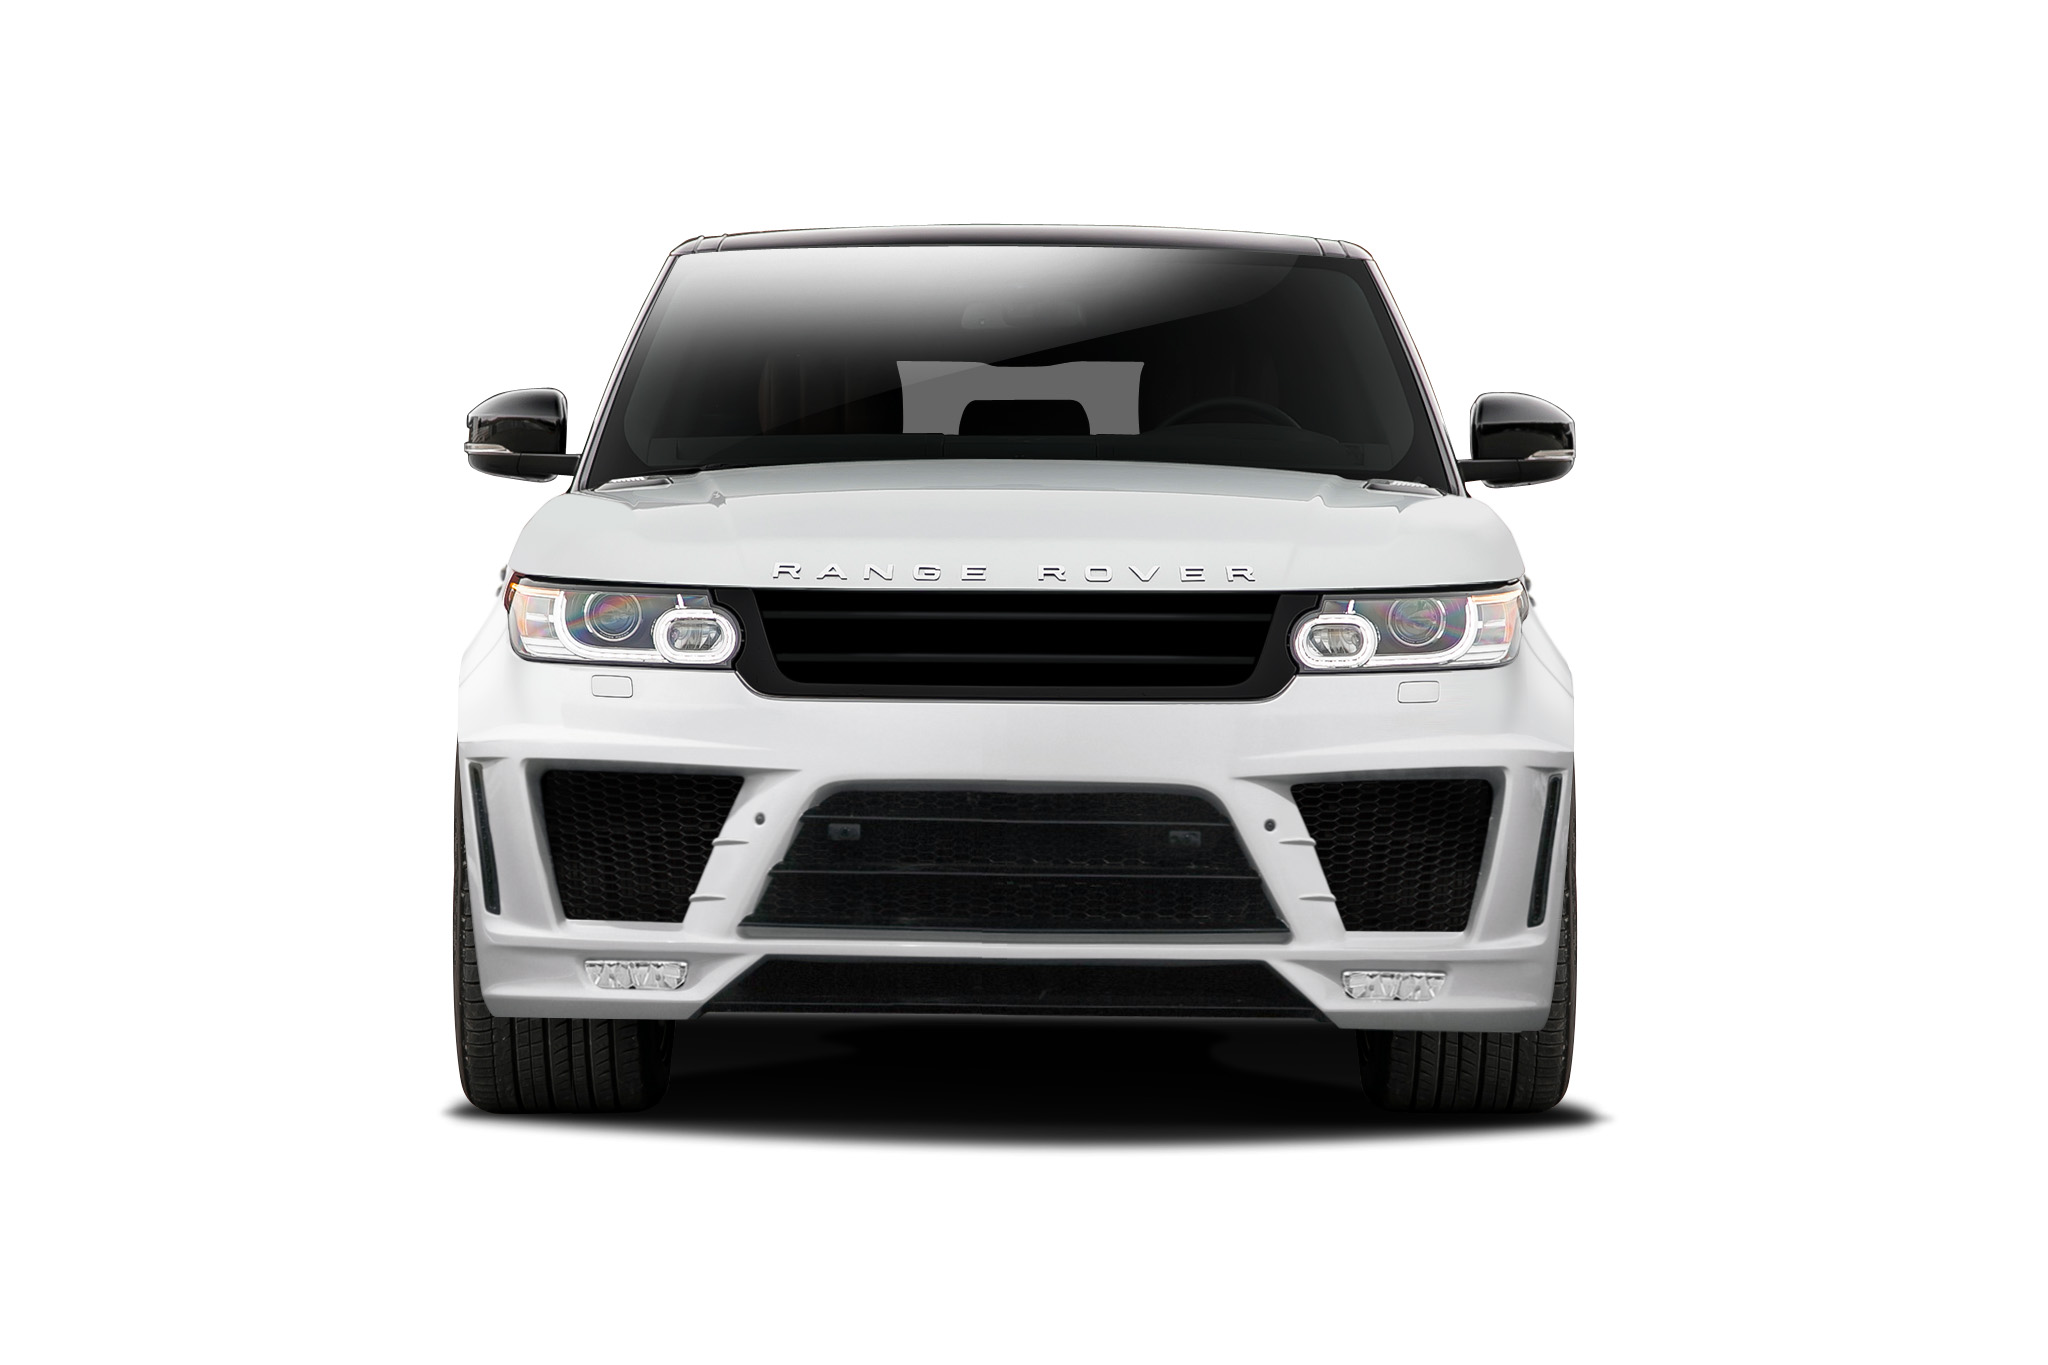 Polyurethane Front Bumper Body Kit For 2015 Land Rover Range Rover